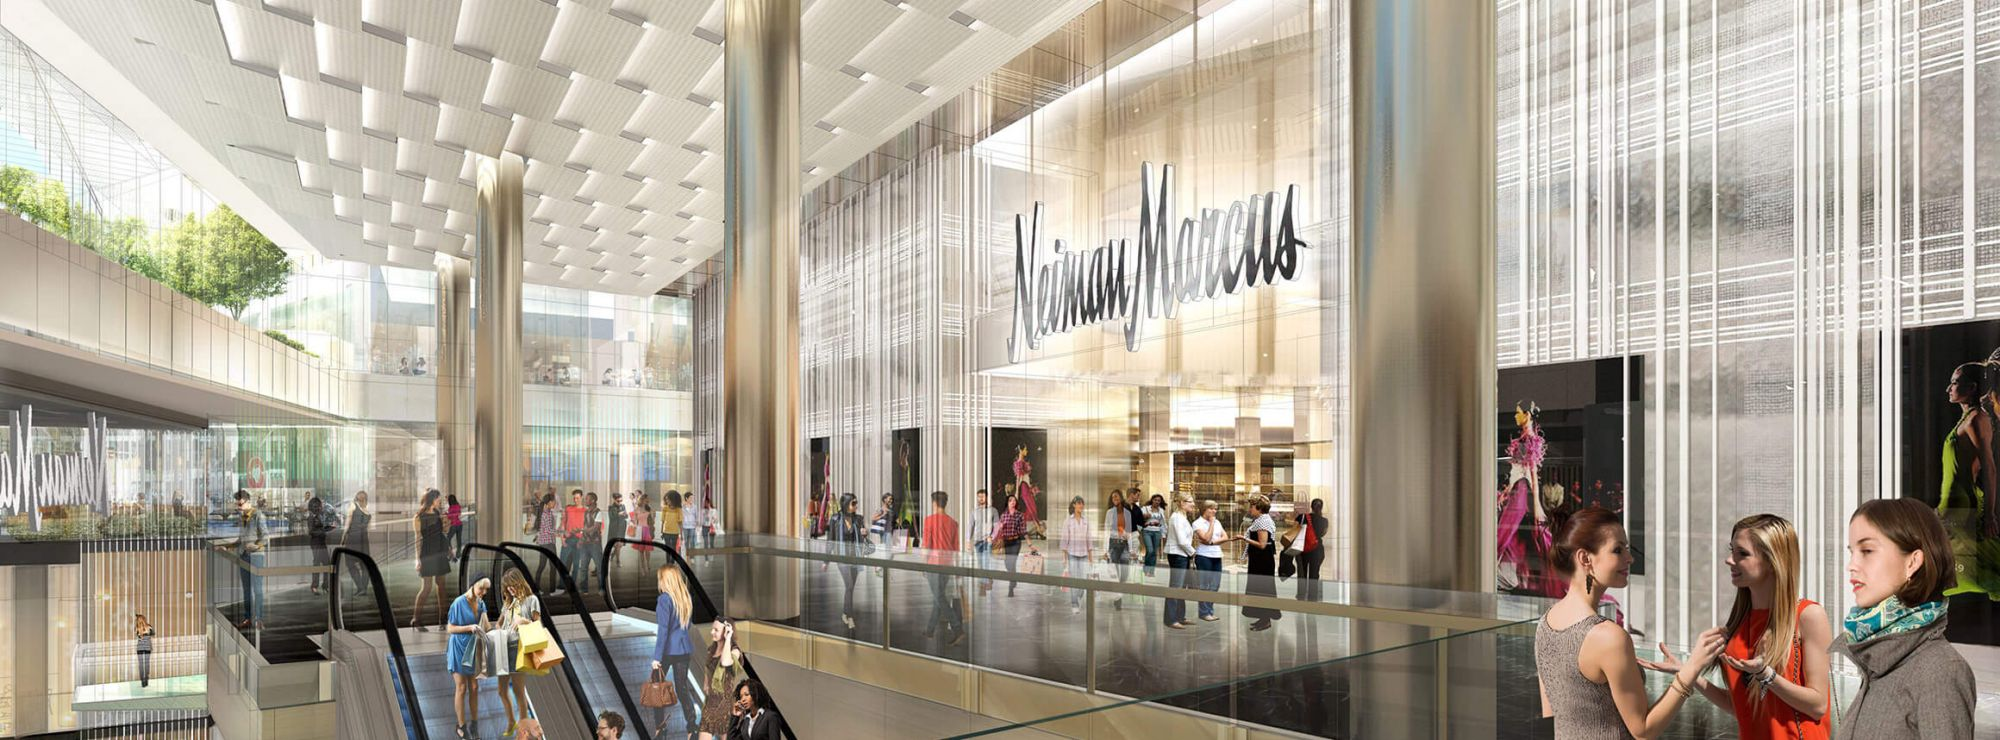 View-of-Neiman-Marcus-entrance-from-The-Shops-at-Hudson-Yards-Courtesy-Related-Oxford-2000x740.jpg